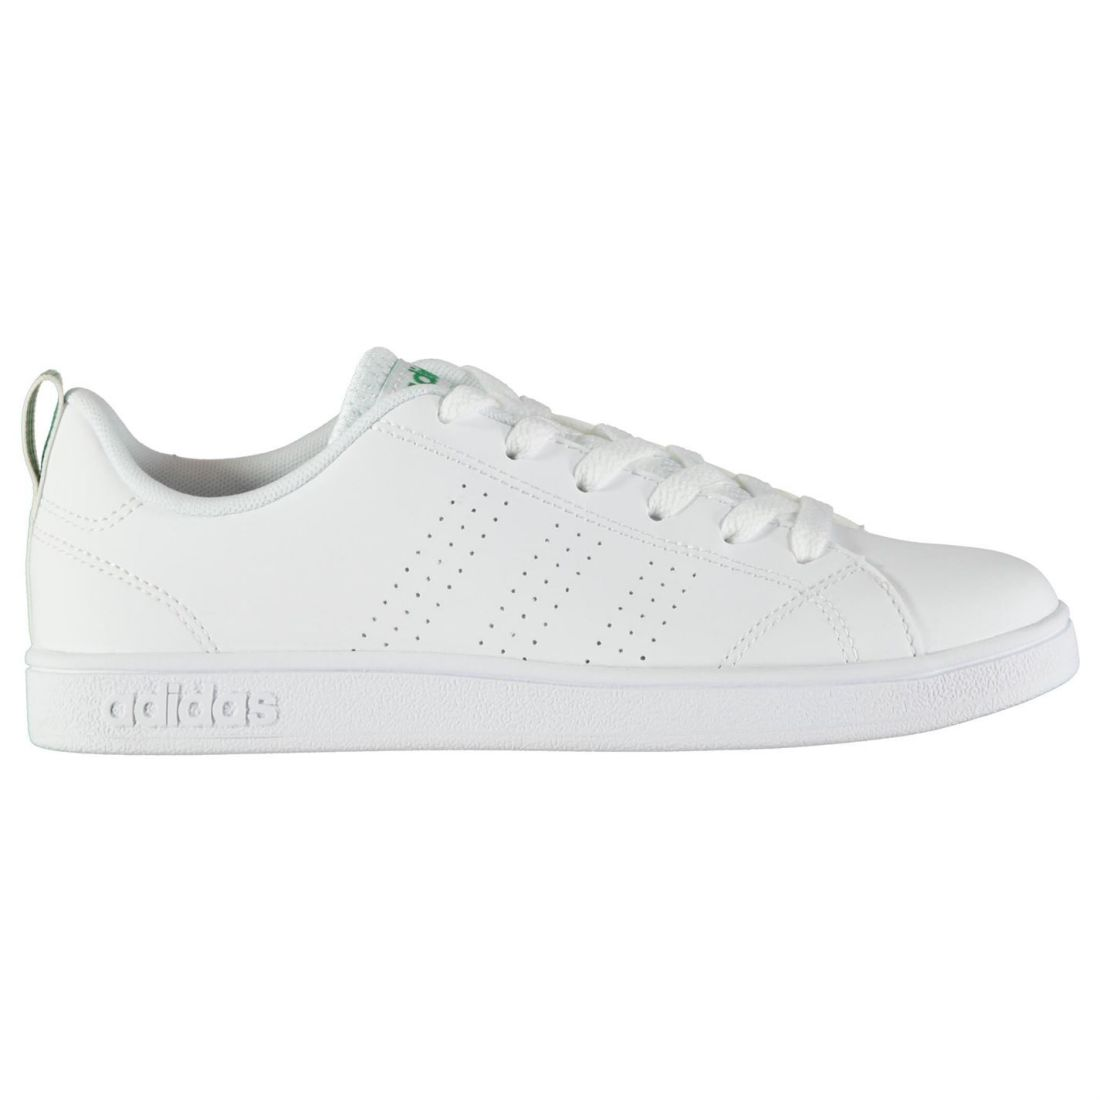 9cc2277328 Shoes adidas VS Advantage Clean K Size 38 AW4884 White. About this product.  Stock photo  Picture 1 of 7 ...